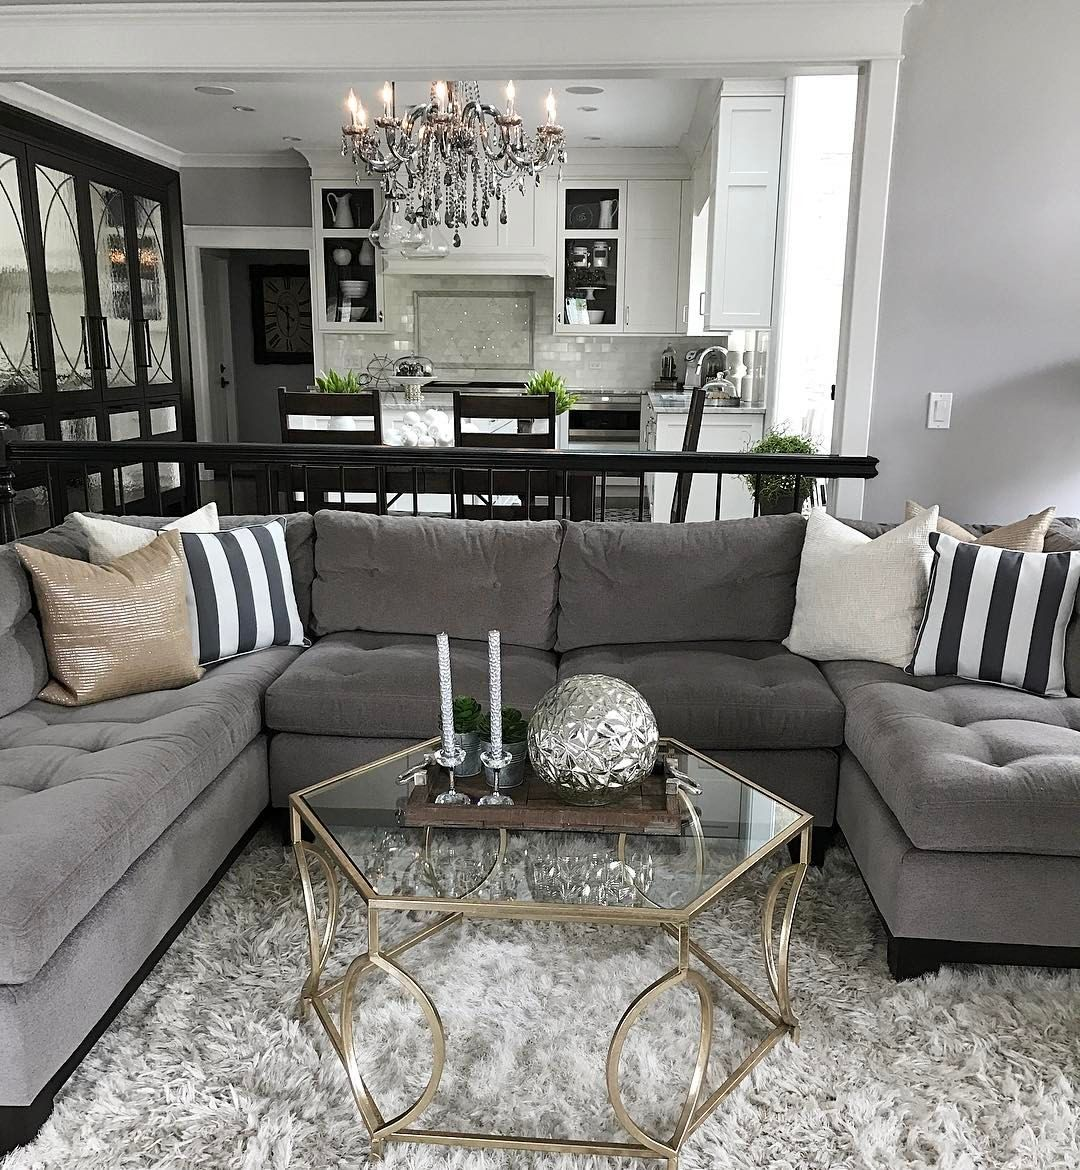 Change Up The Gray Couch With And Chic Black White Striped Accents